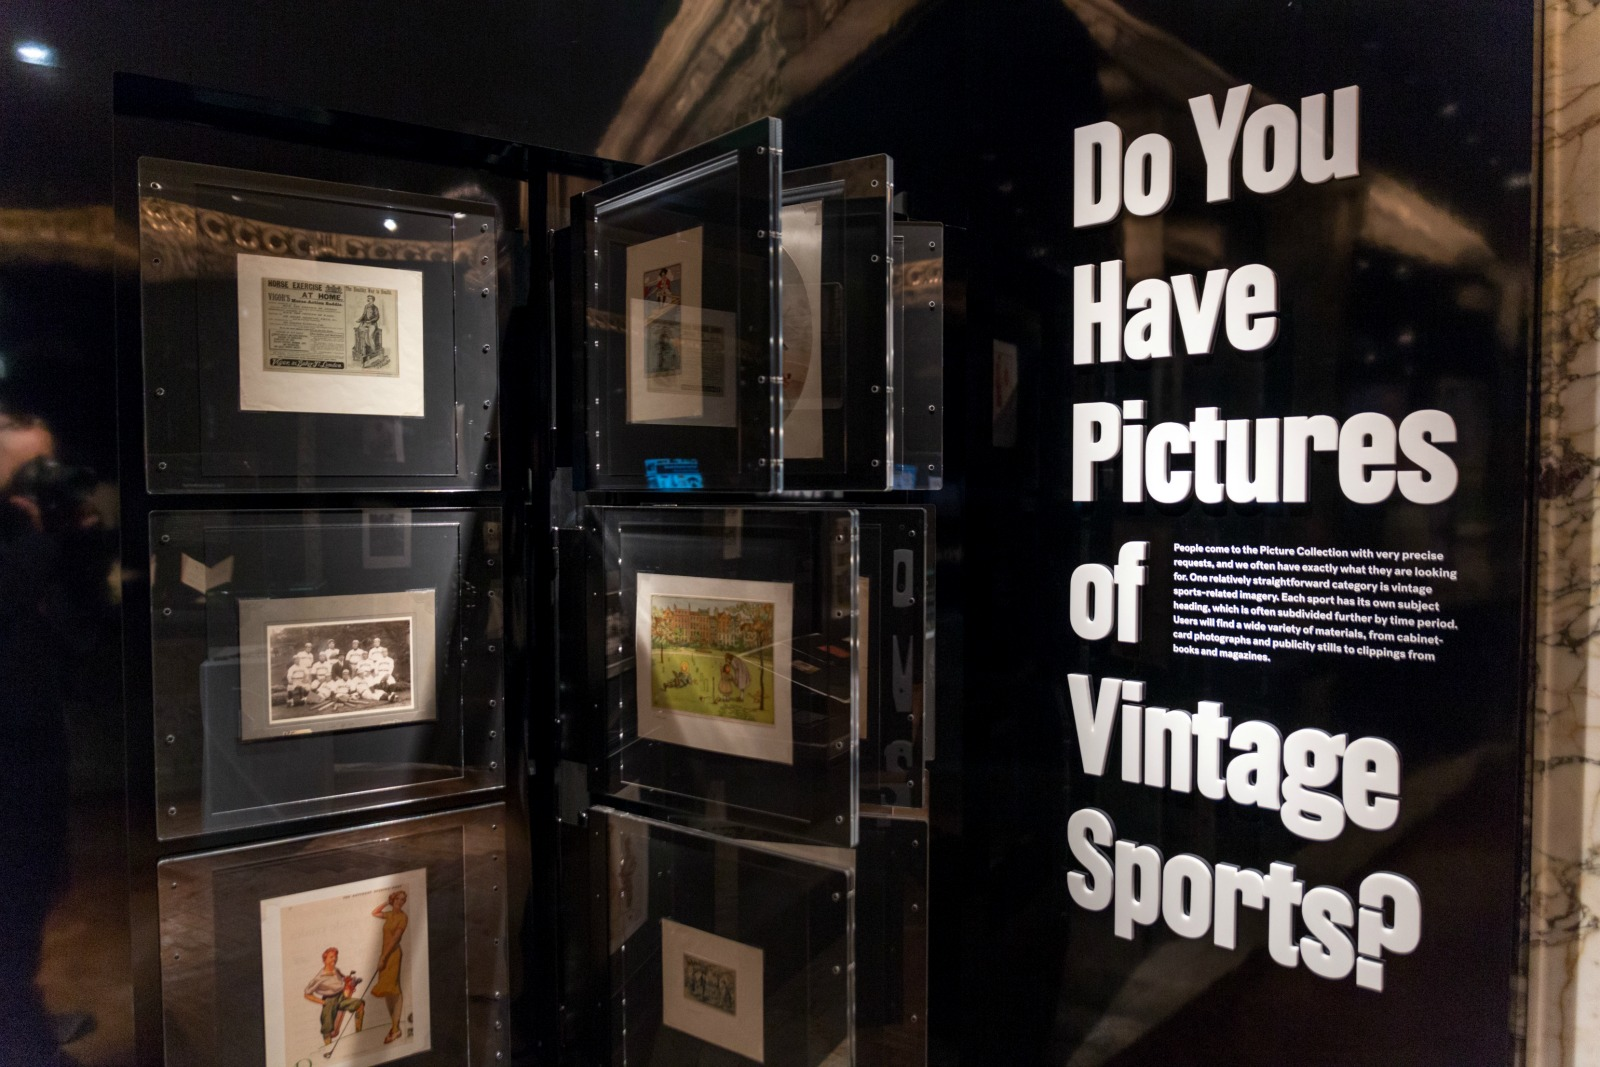 HISTORY...vintage sports are featured in the show ©NYPL